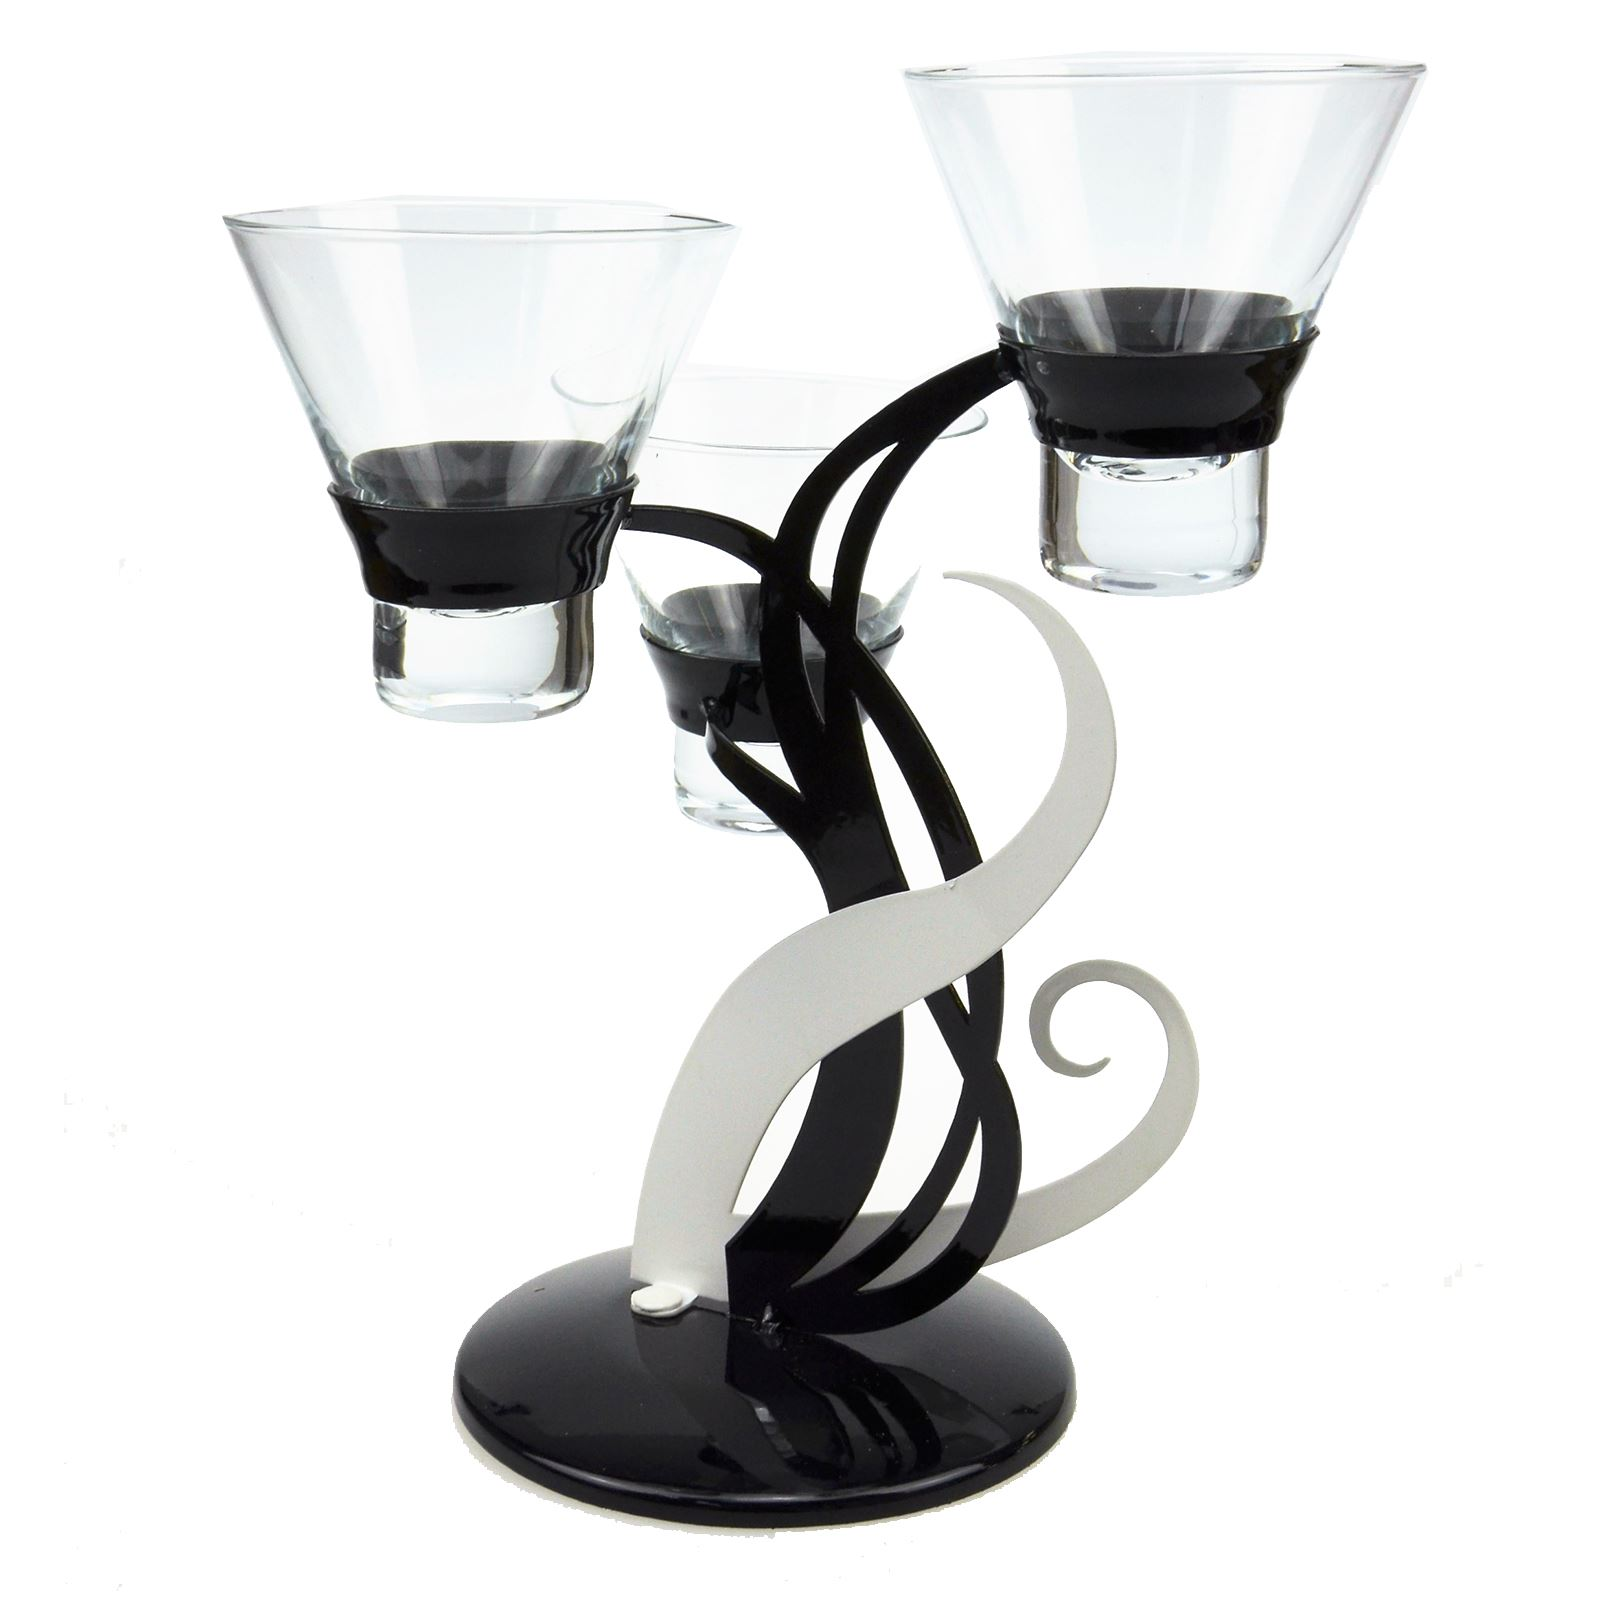 Candle holders to accessorize your home. Our range of candle holders makes accessorizing your home affordable, fun and easy. Place some sleek and stylish glass candle holders on a wall shelf, or group some colorful tealight holders on the window sill.